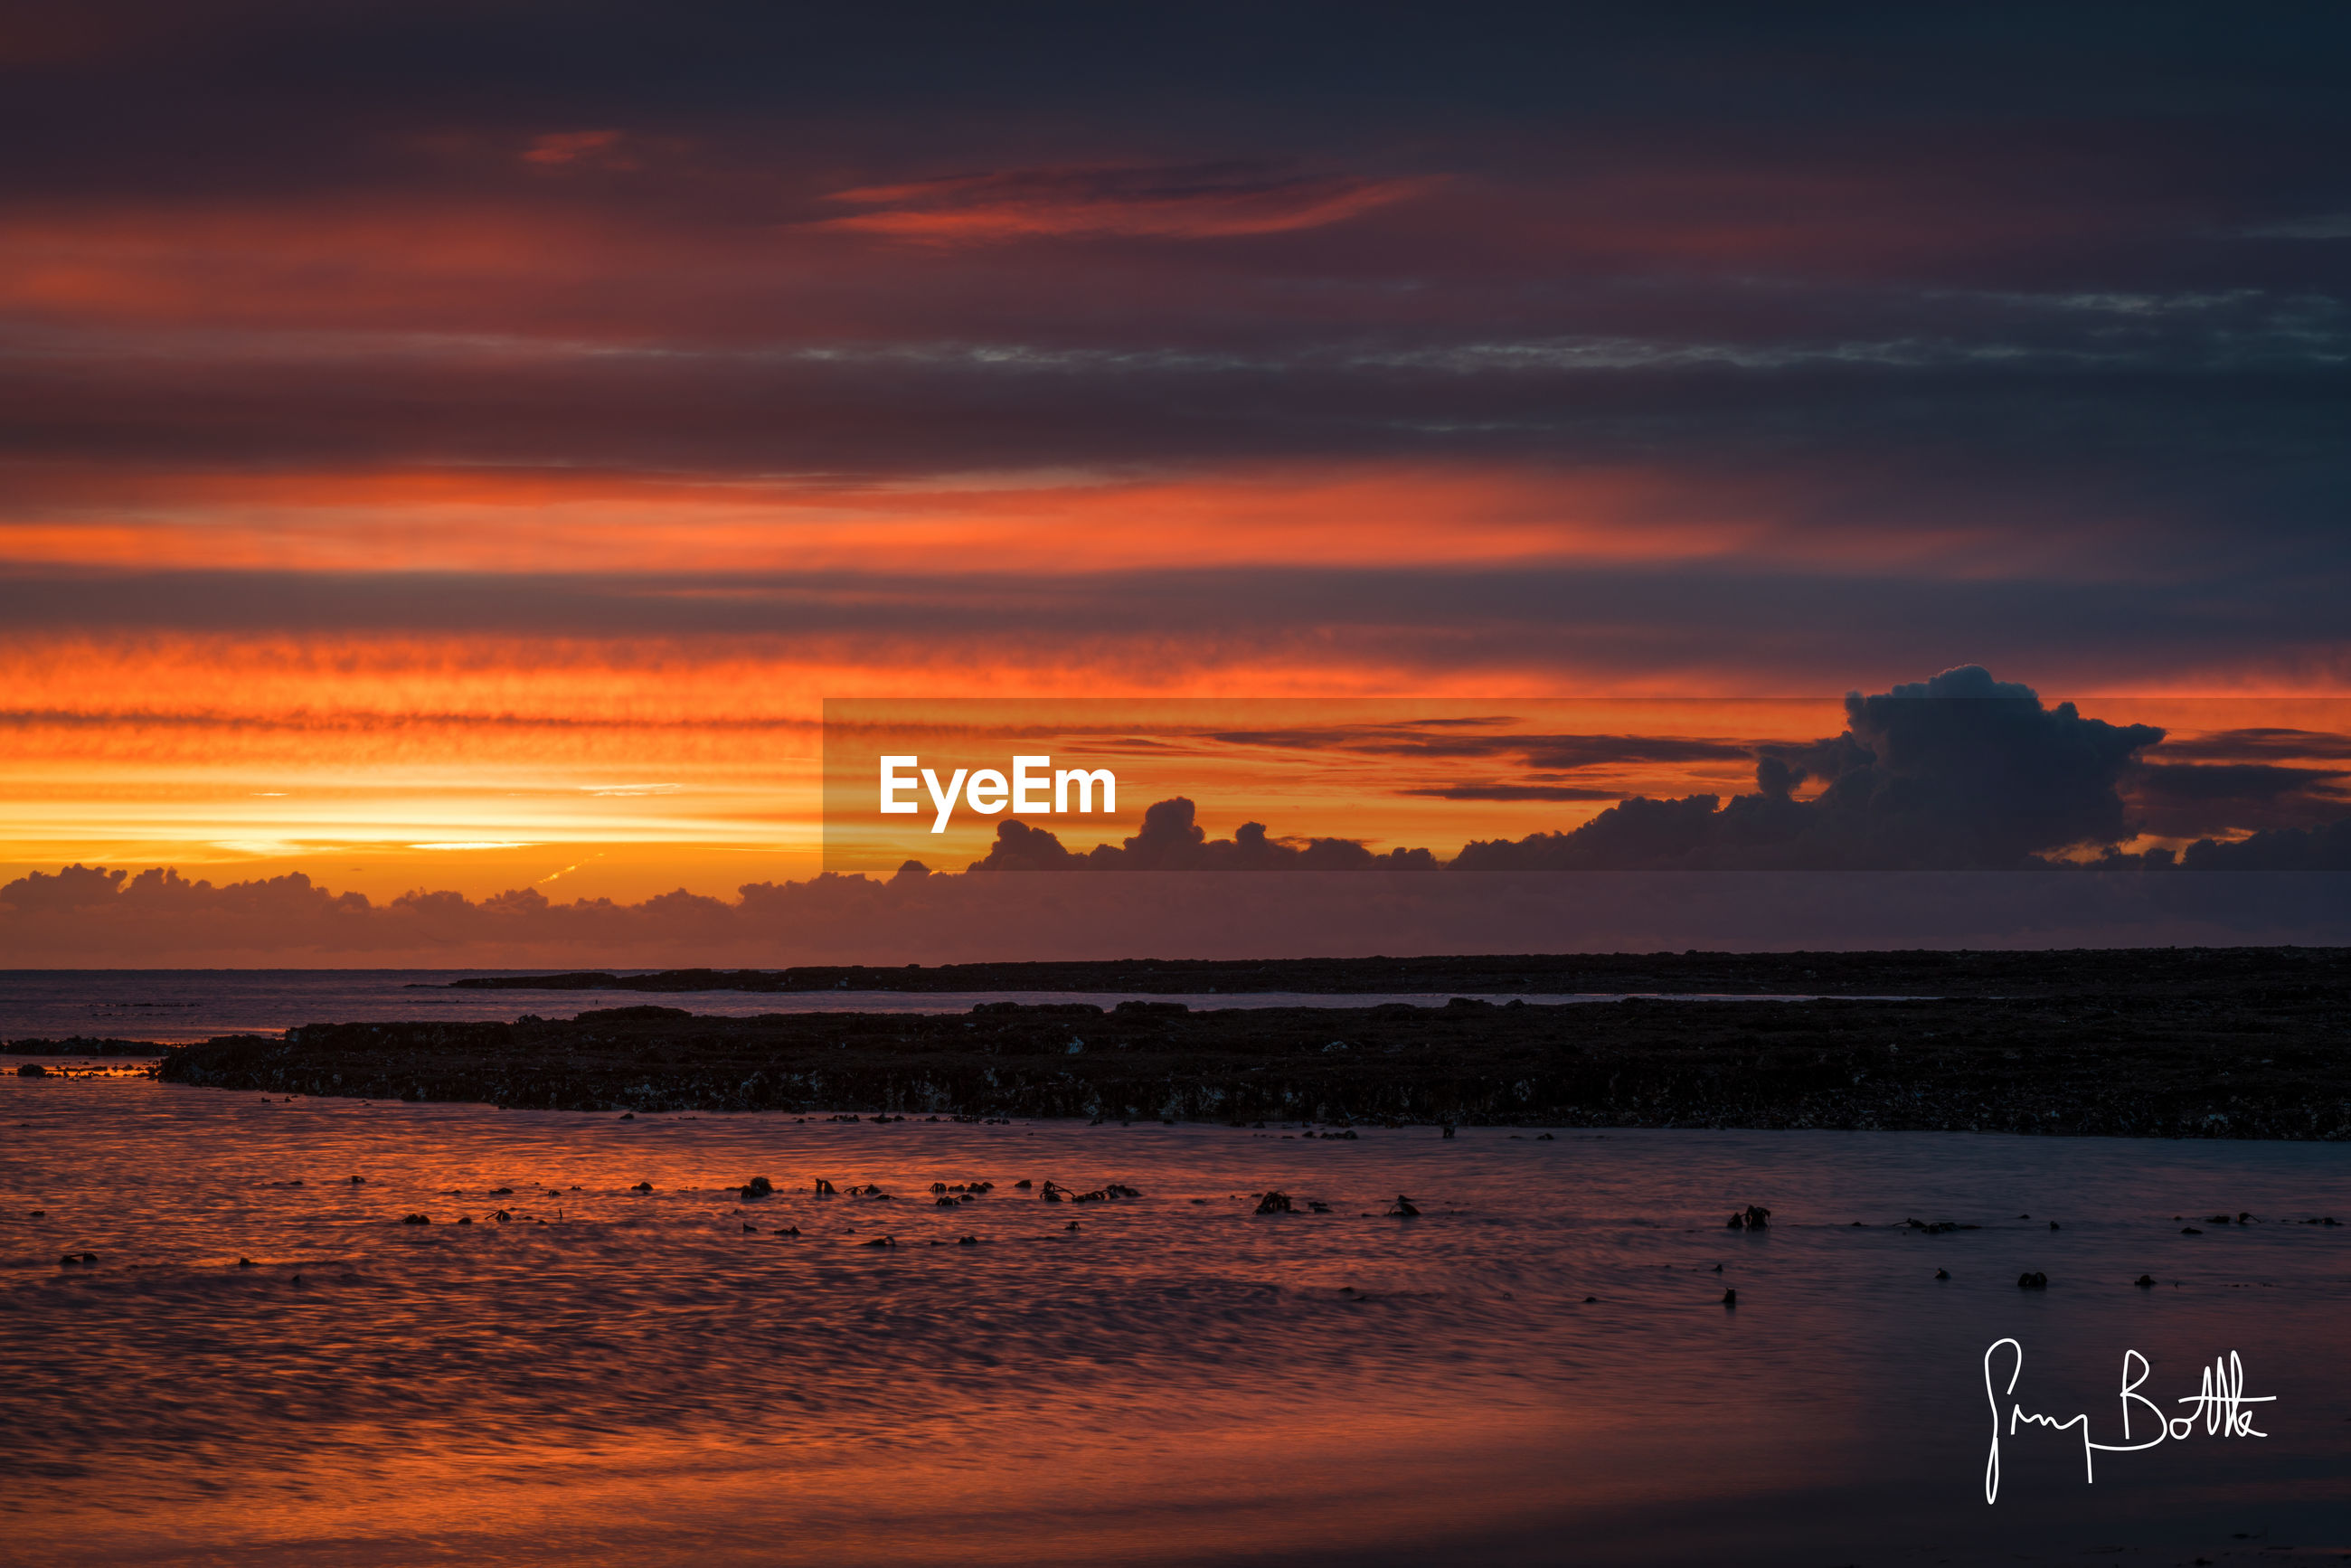 sunset, beauty in nature, reflection, sky, scenics, sea, water, nature, cloud - sky, dramatic sky, idyllic, outdoors, horizon over water, beach, no people, silhouette, romantic sky, tranquil scene, landscape, astronomy, day